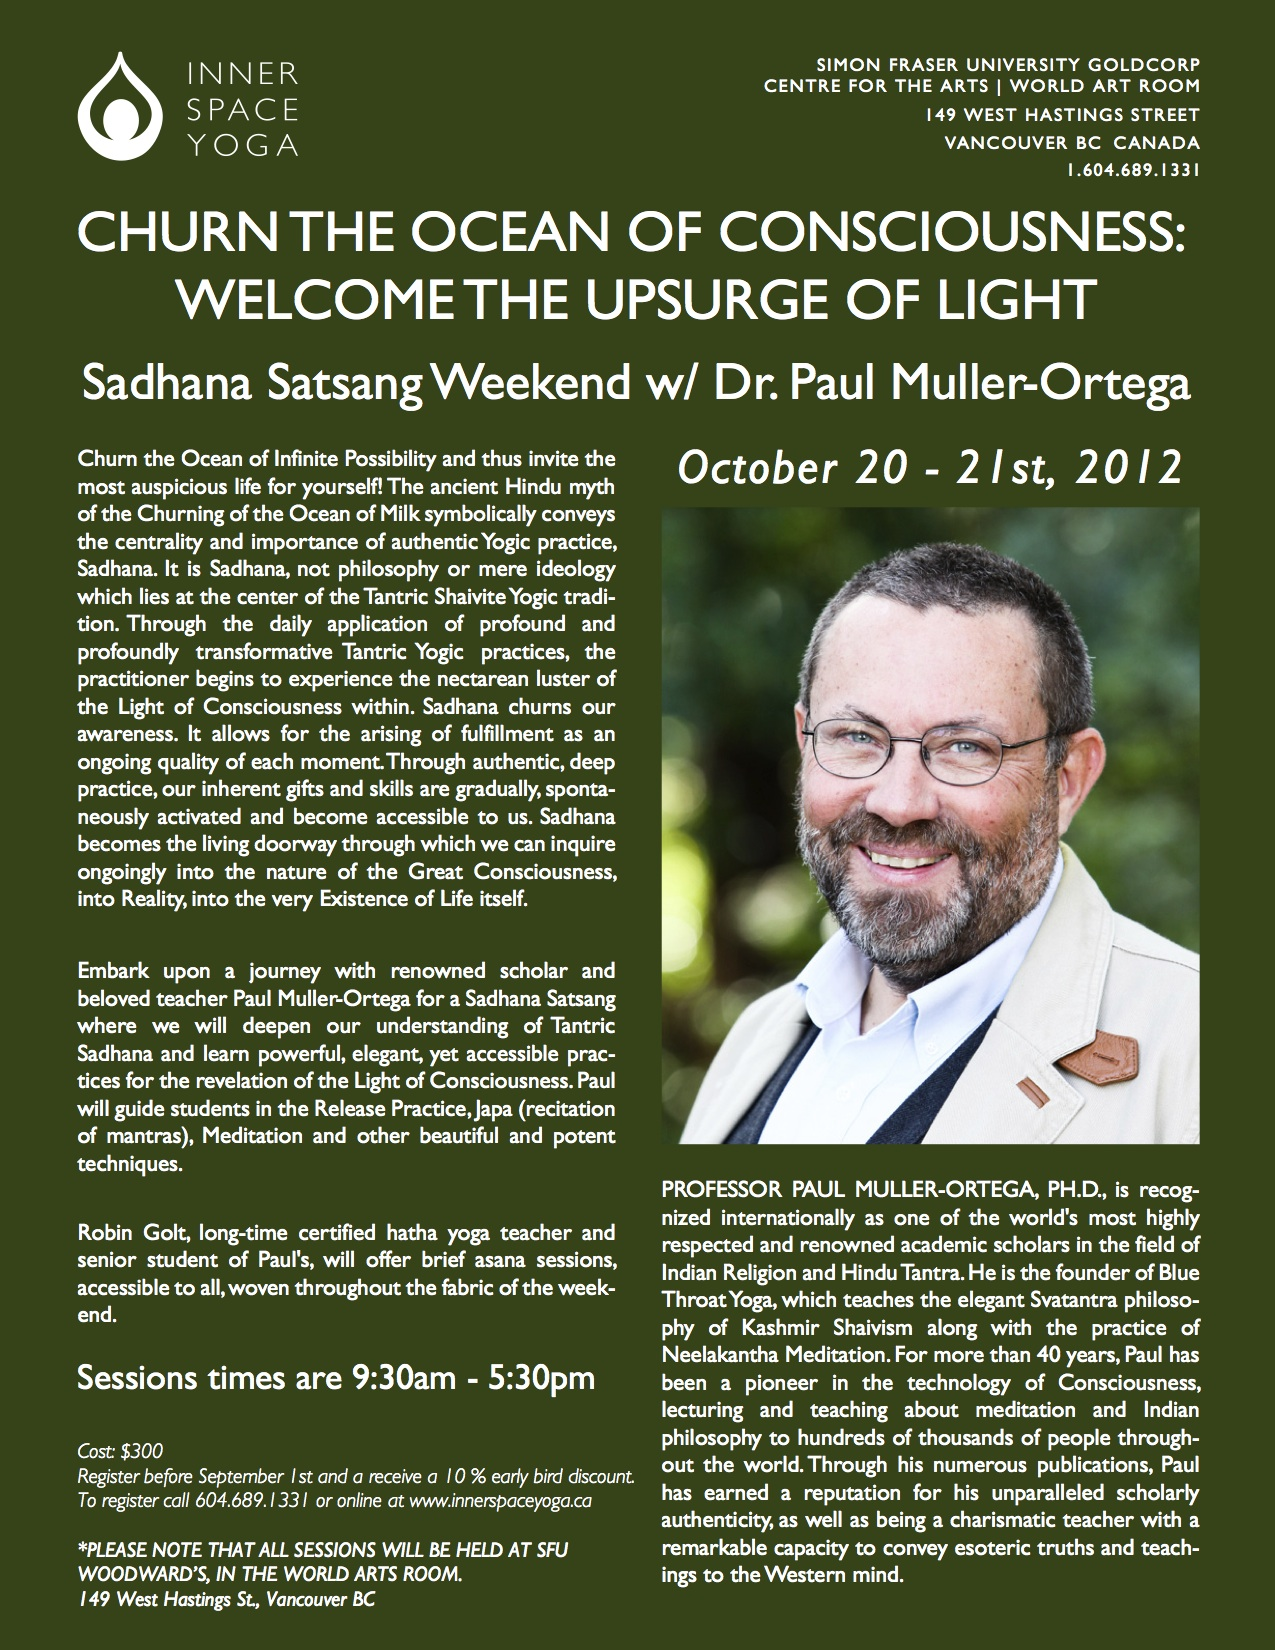 Paul Muller Ortega is coming to Vancouver!